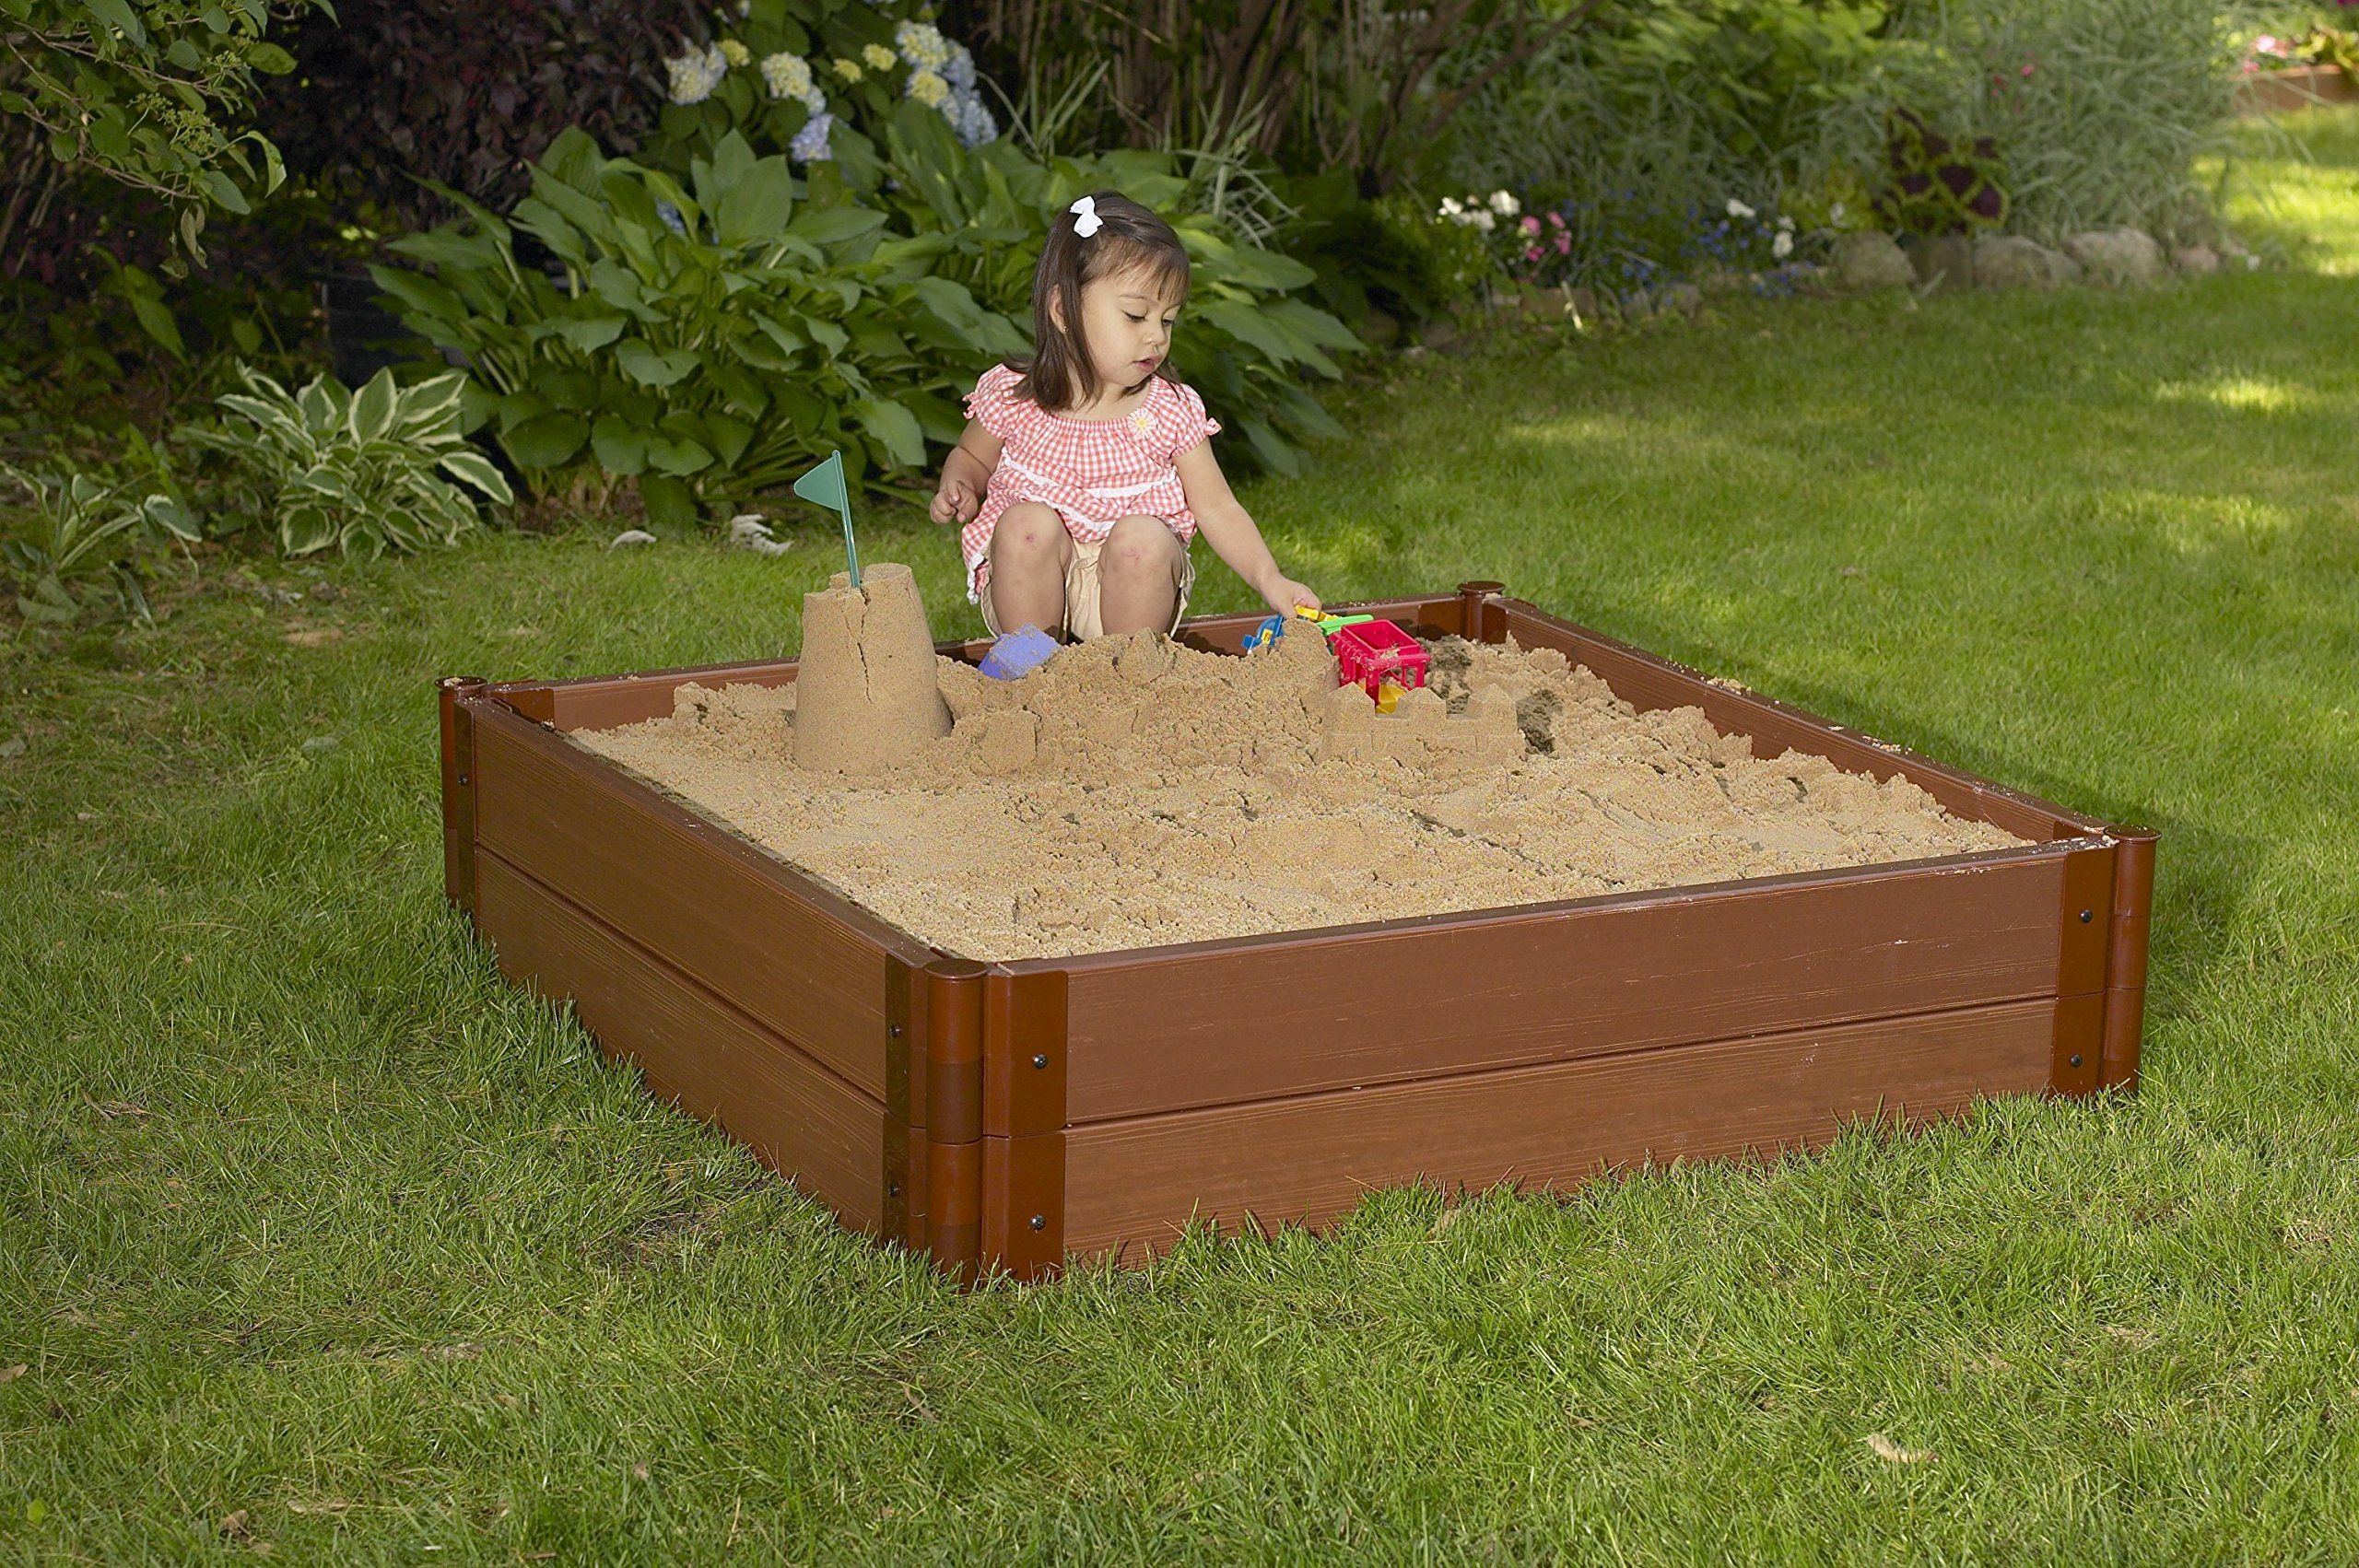 Frame It All 300001512 One inch Series Composite Square Sandbox Kit with Collapsible Cover, 4' x 4' x 11'' by Frame It All